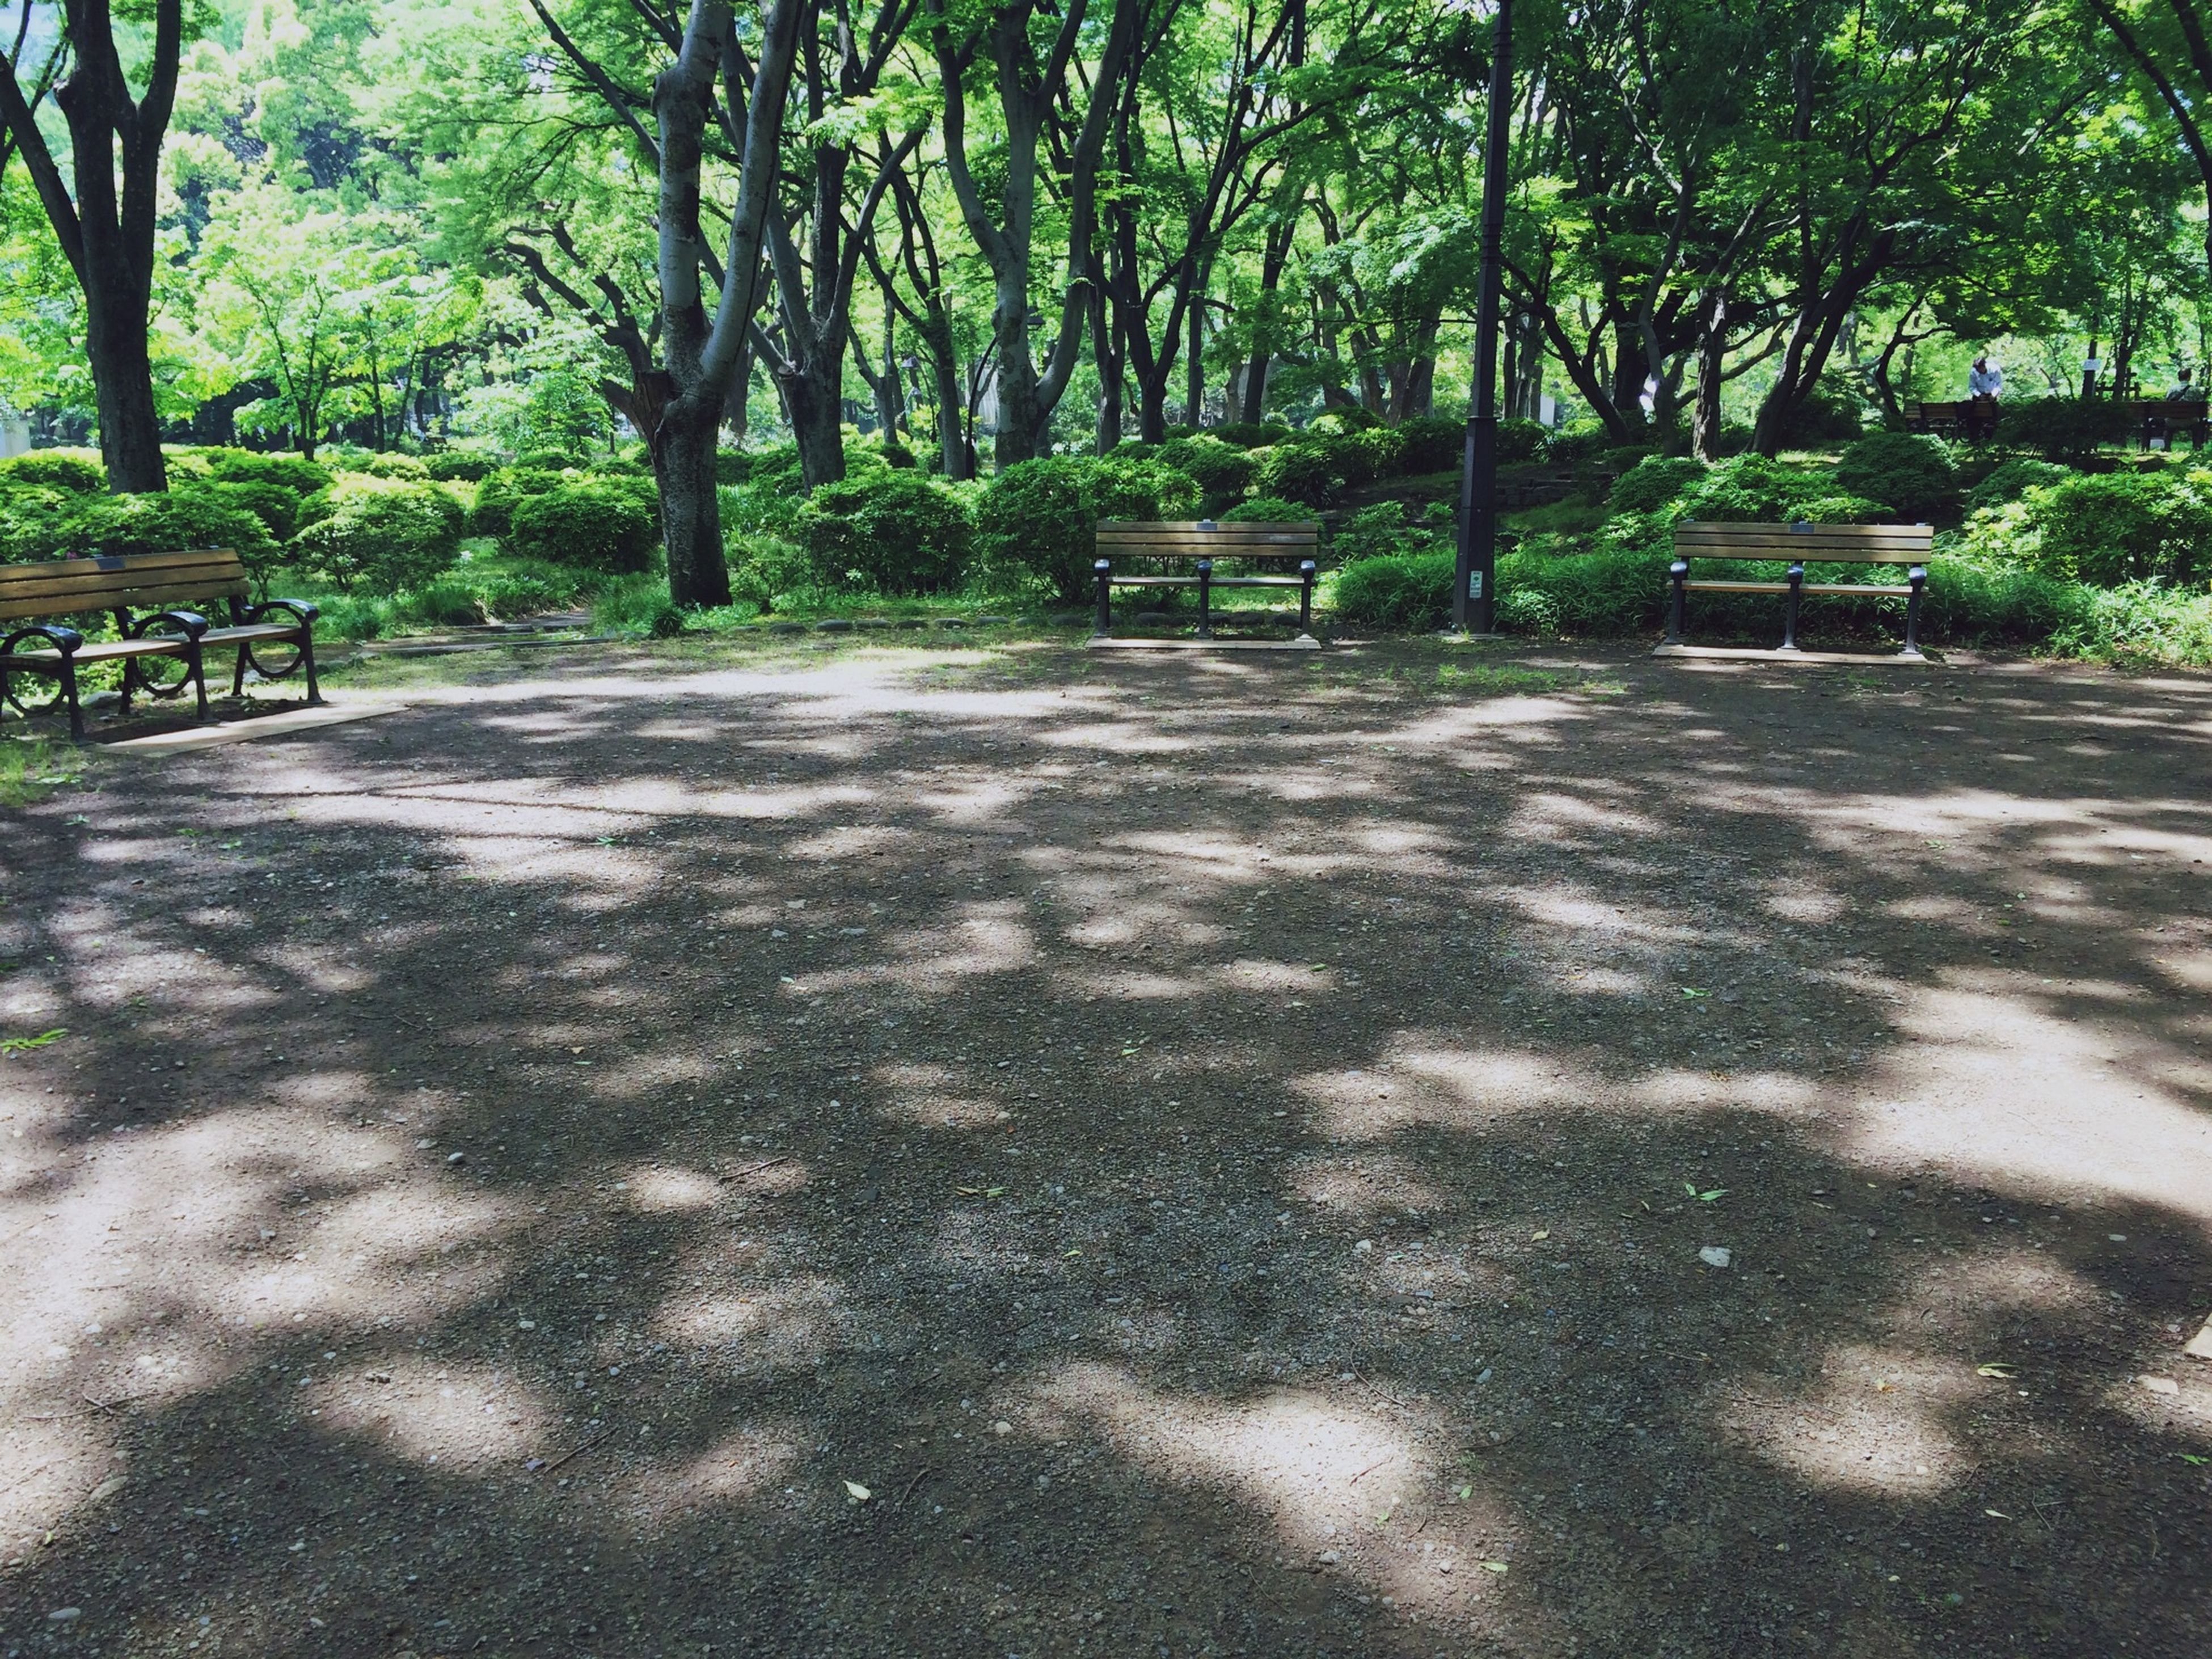 tree, tree trunk, growth, shadow, park - man made space, tranquility, the way forward, footpath, sunlight, nature, forest, park, tranquil scene, day, outdoors, branch, road, green color, no people, beauty in nature